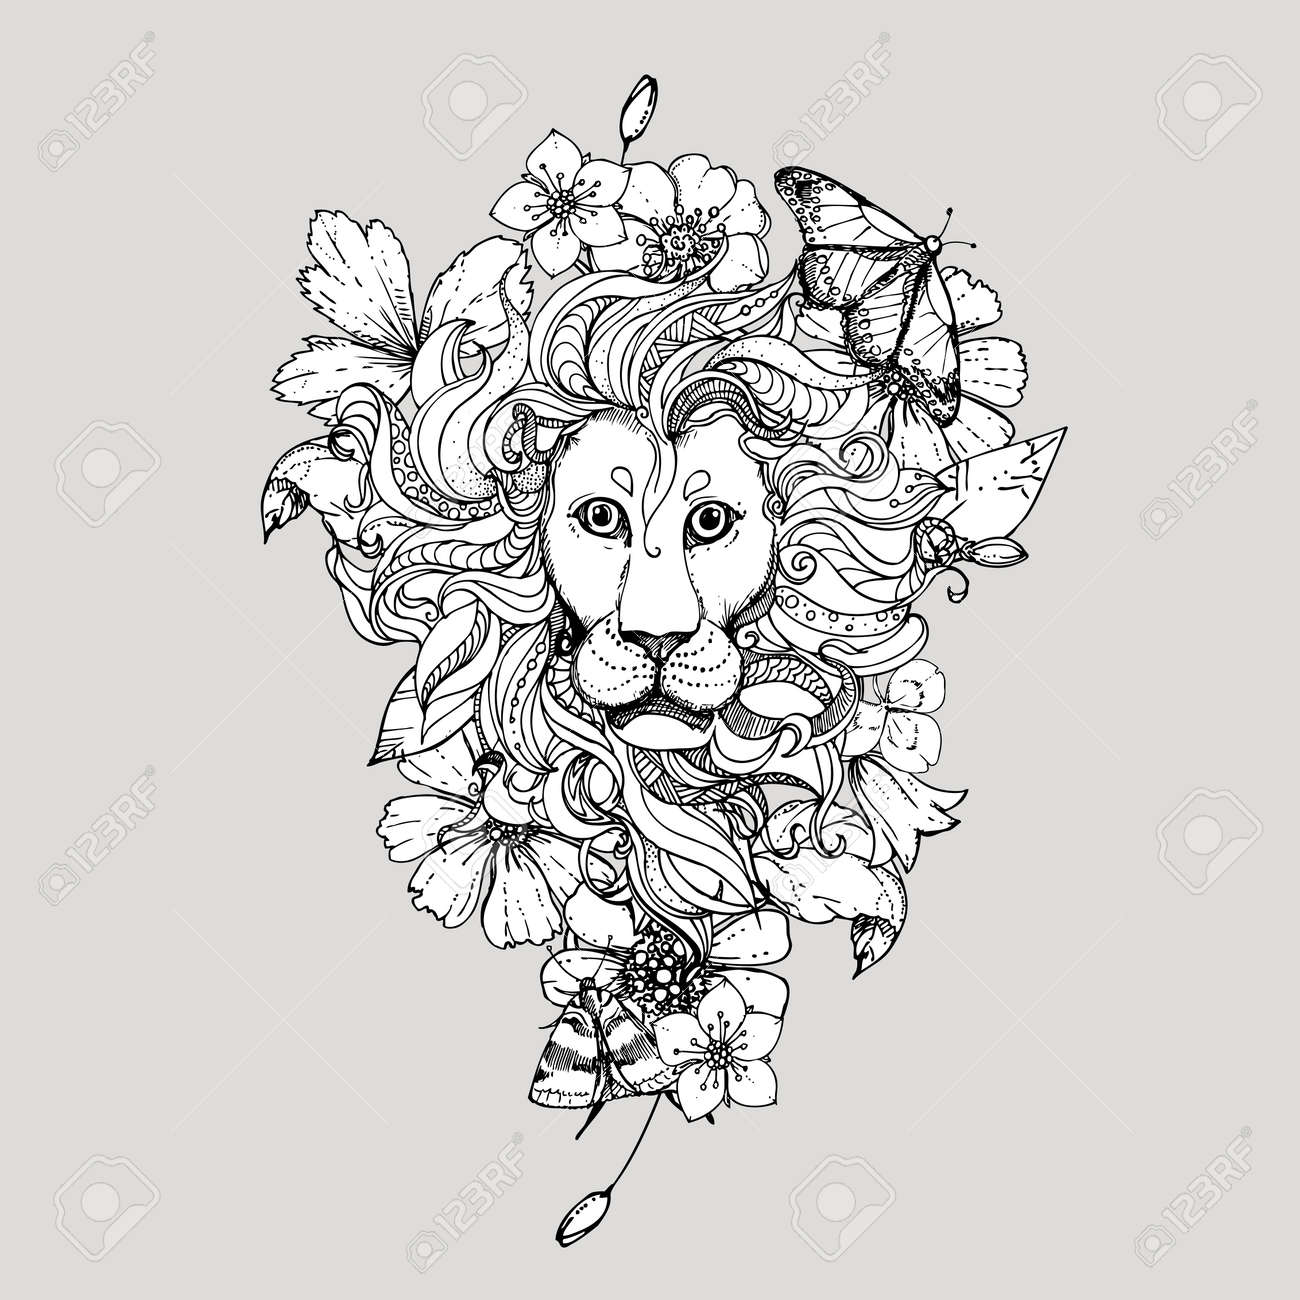 Illustration Of Doodle Lion With Flowers And Butterfly Sketch Stock Vector